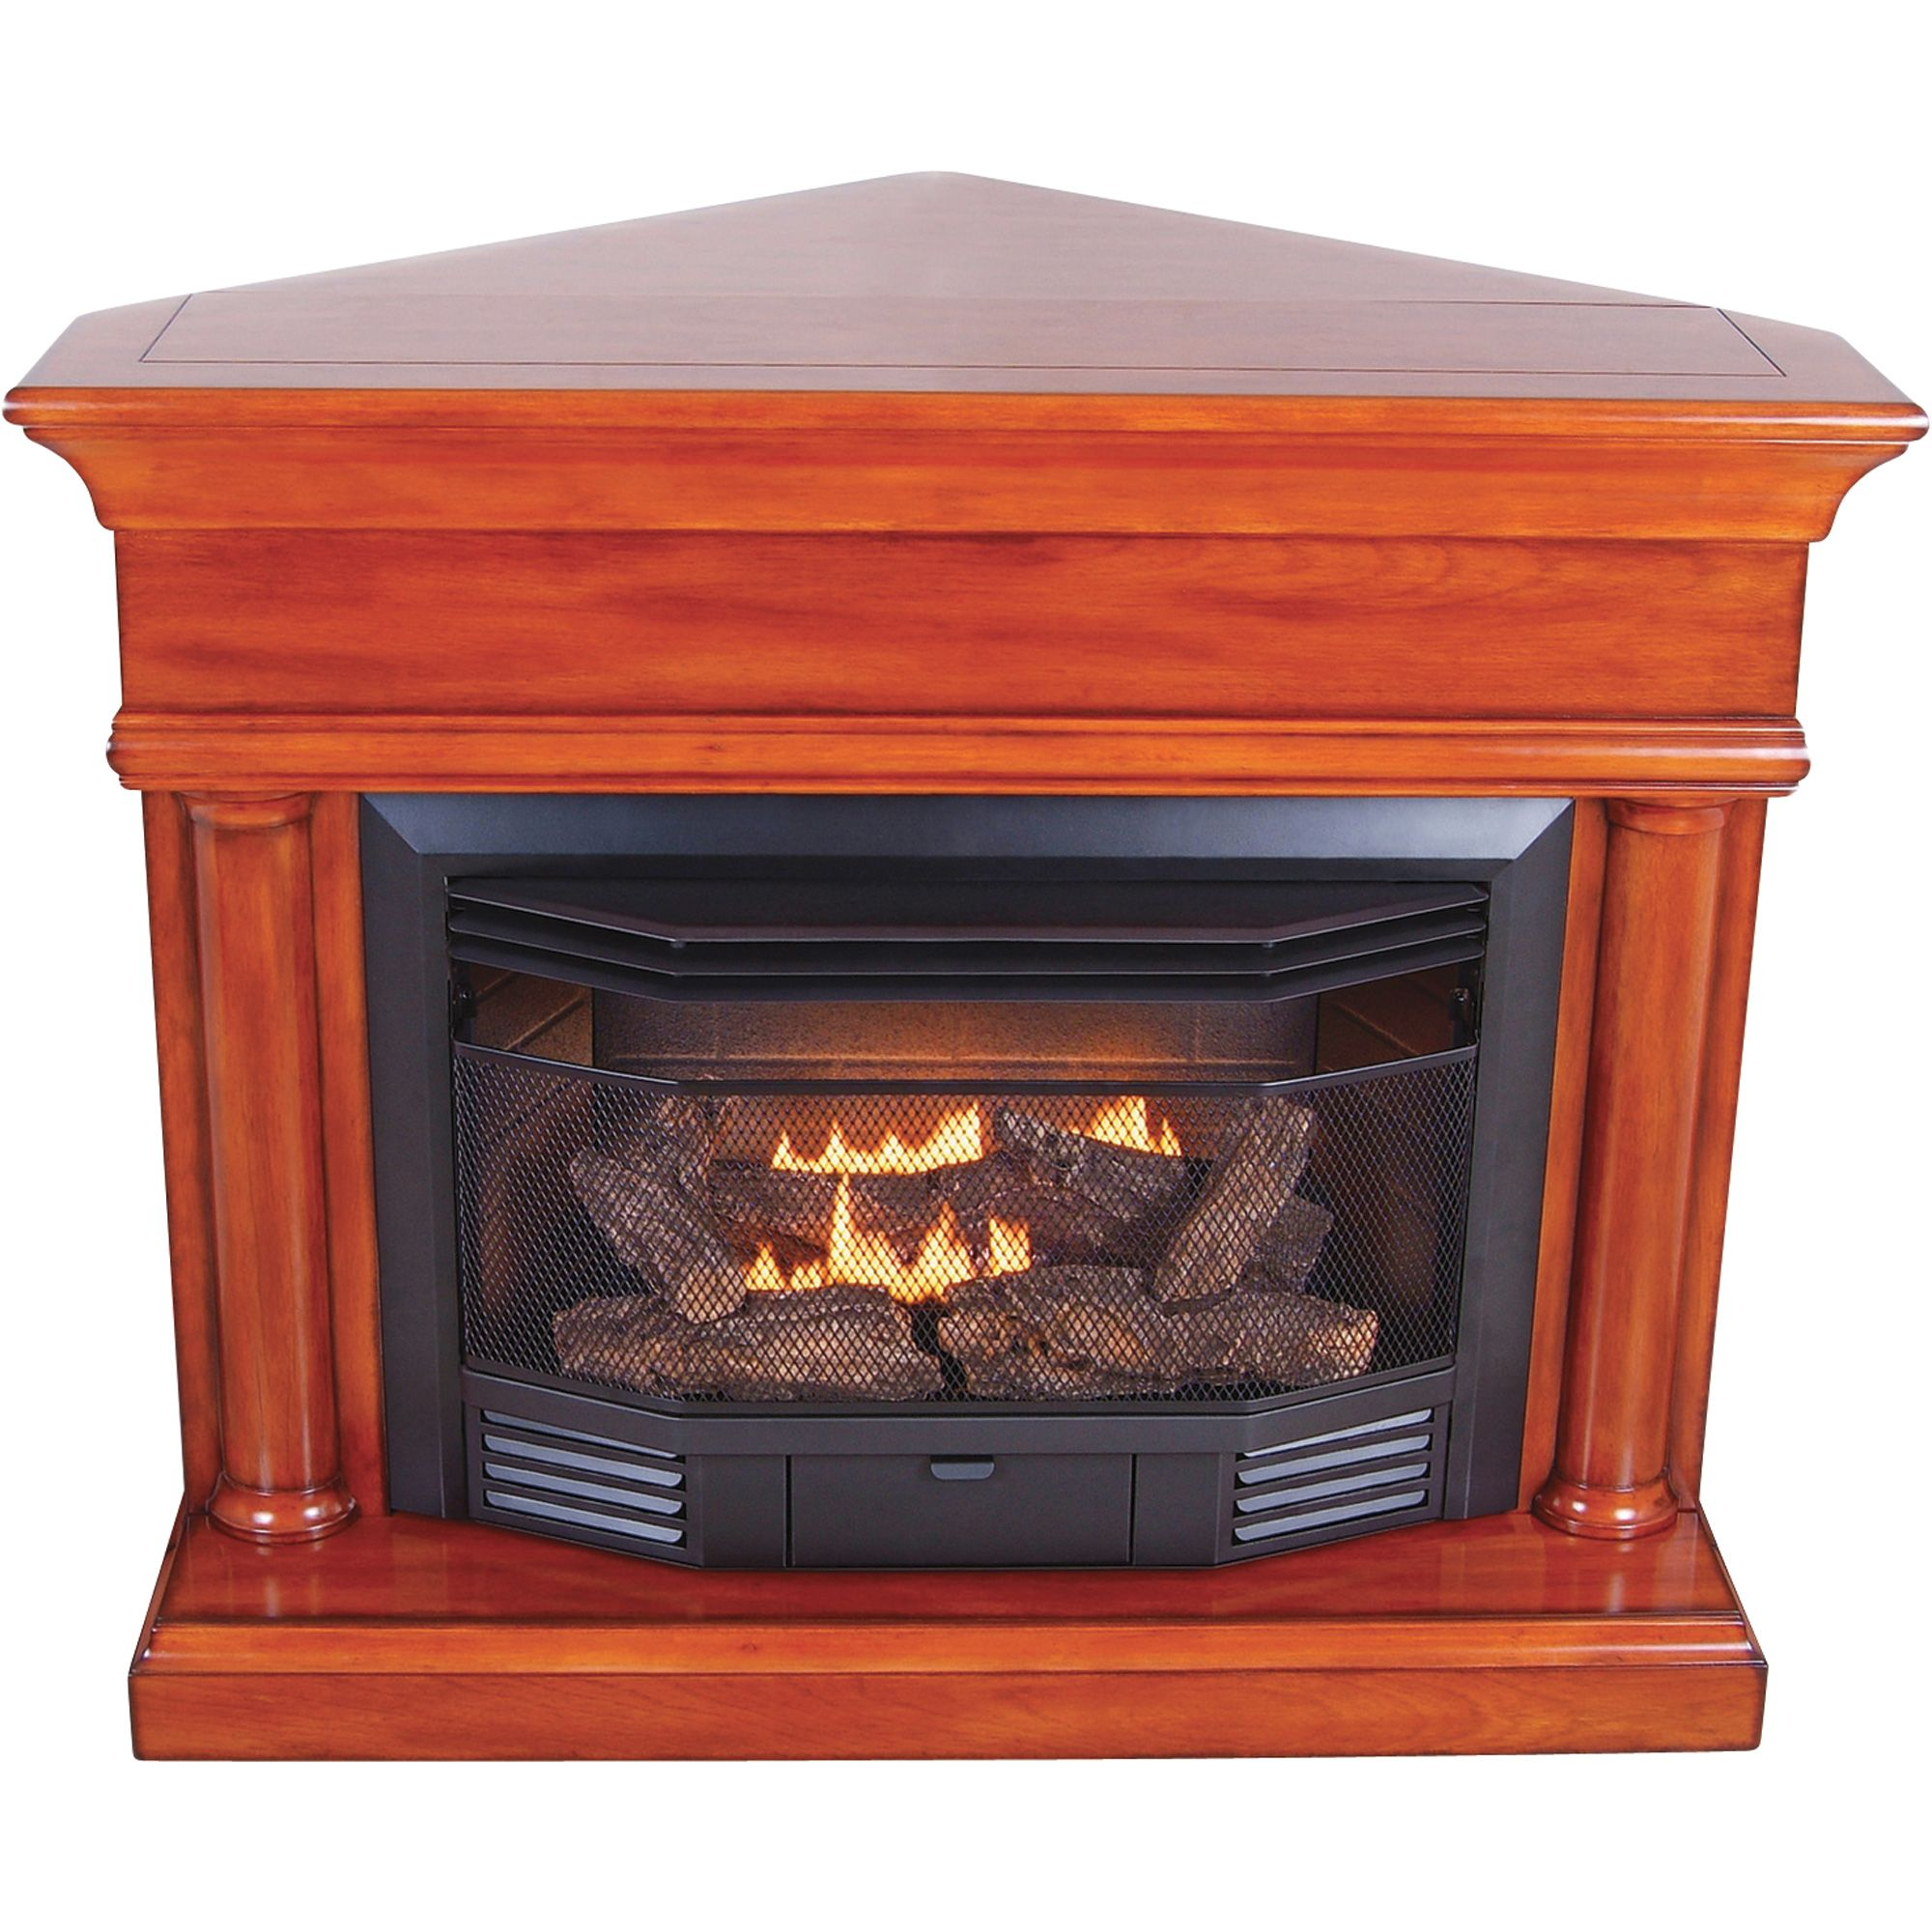 Procom dual fuel vent free fireplace with corner conversion kit procom dual fuel vent free fireplace with corner conversion kit 23000 btu heritage teraionfo